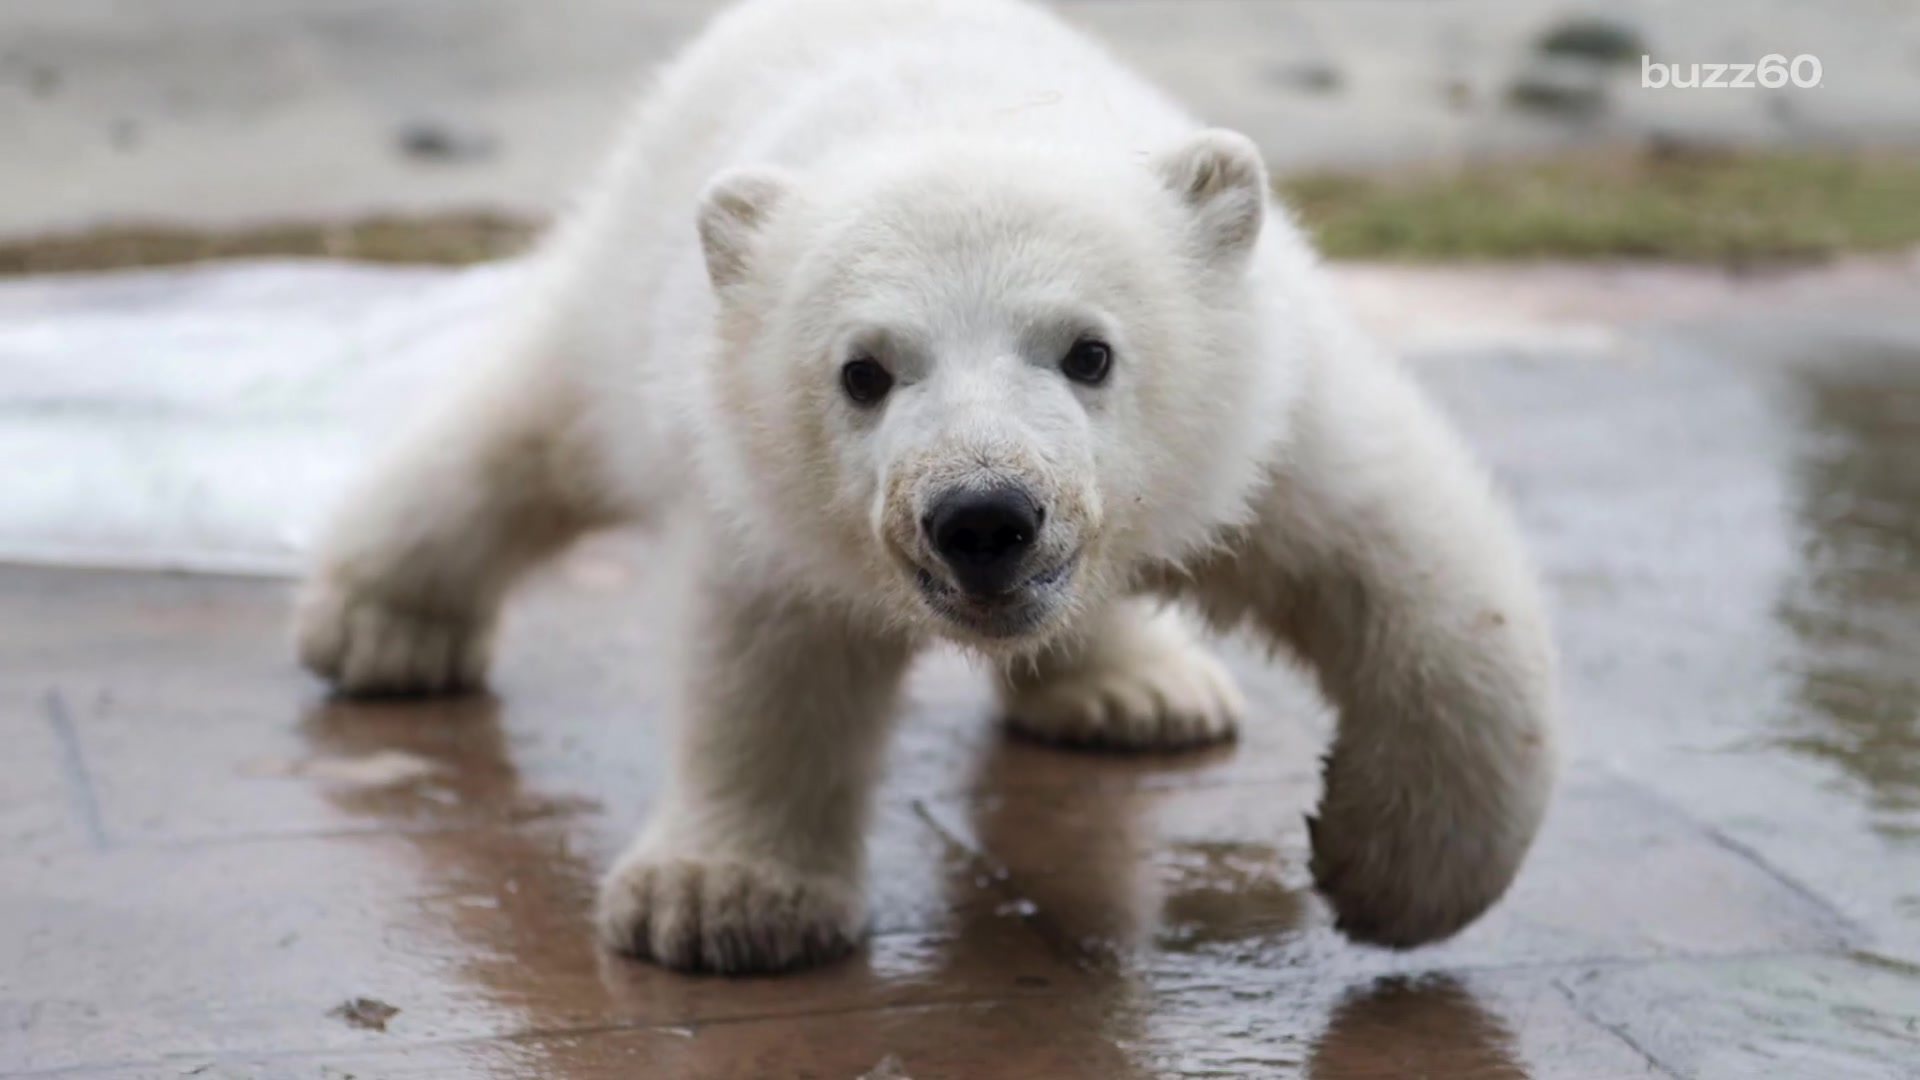 Meet Juno, the Toronto Zoo's Adorable Baby Polar Bear